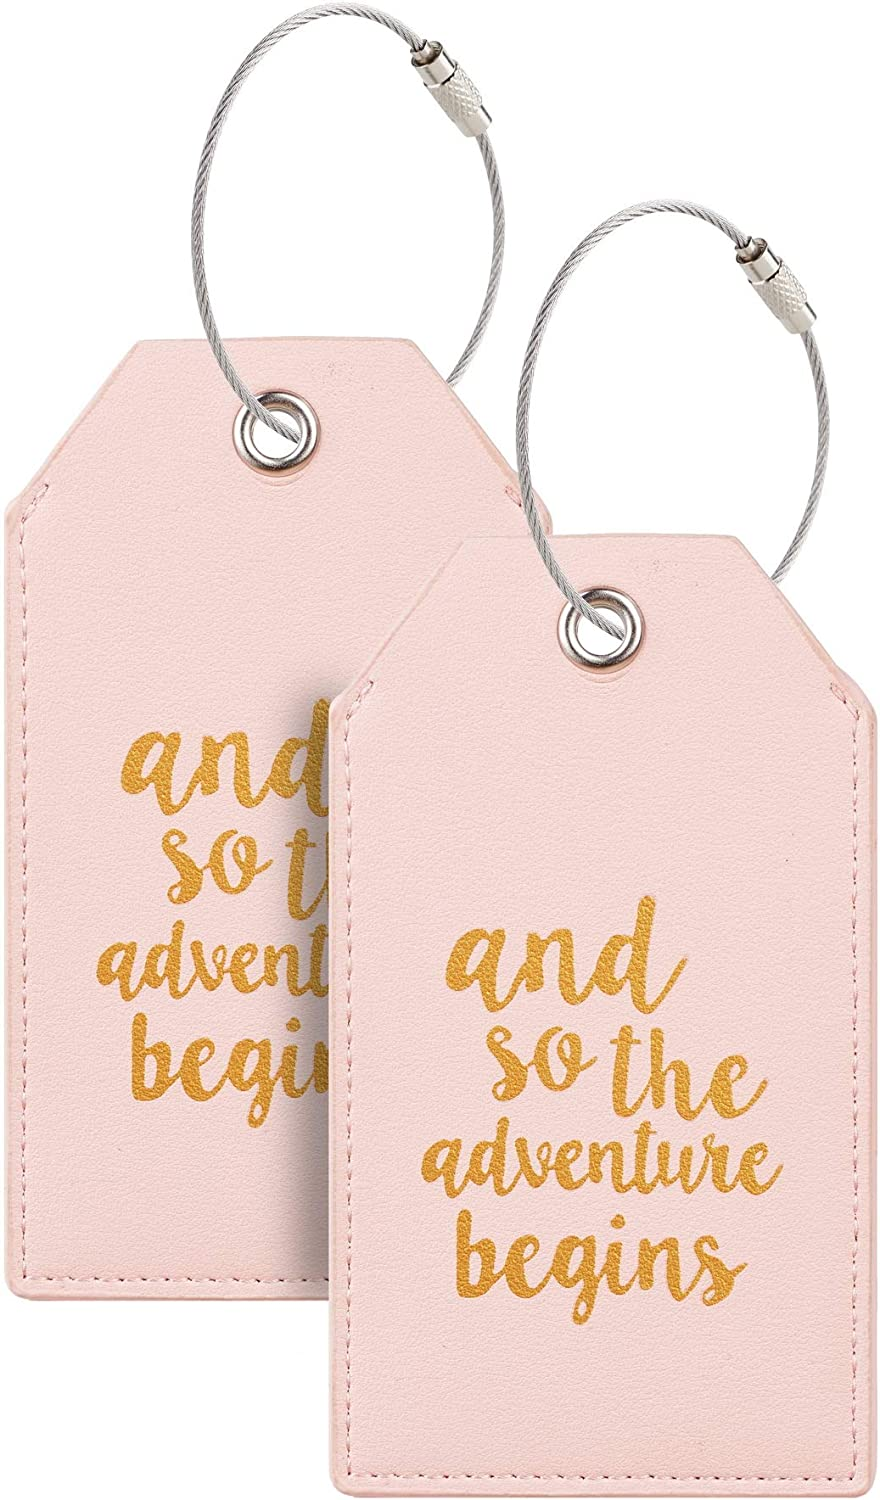 Casmonal Luggage Tags with Full Back shopping Loops Cover Steel Limited Special Price Privacy w